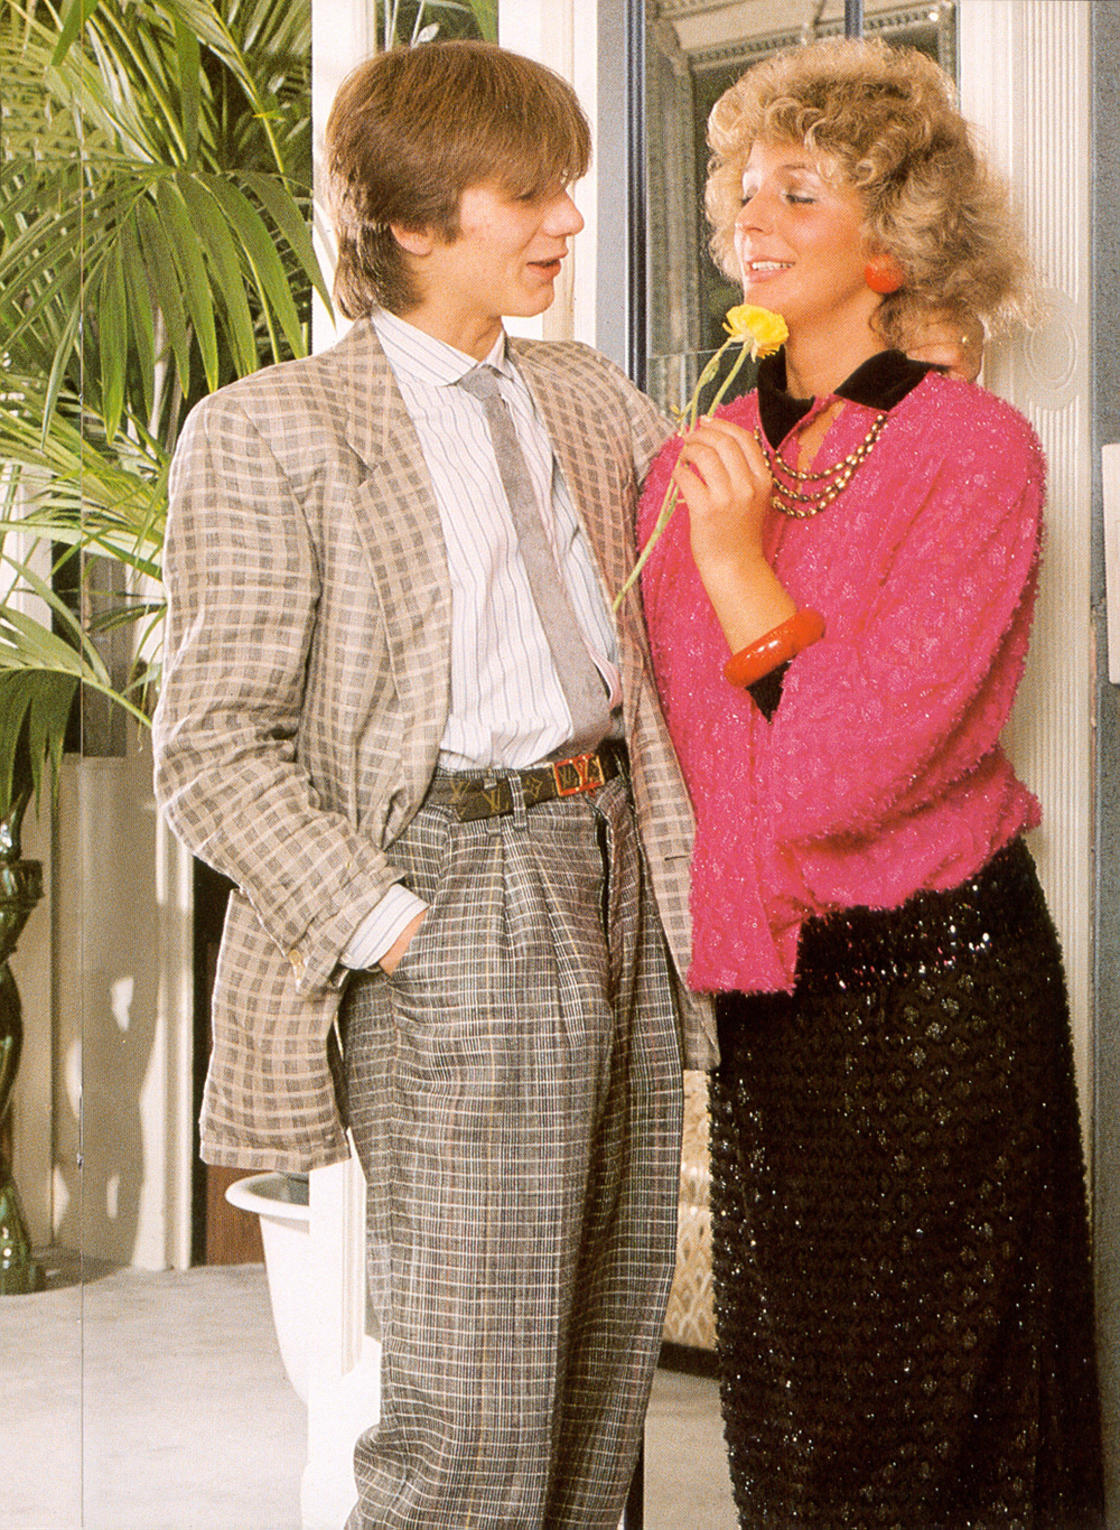 Adult Fashions – The fashion from the 80s seen through adult magazines